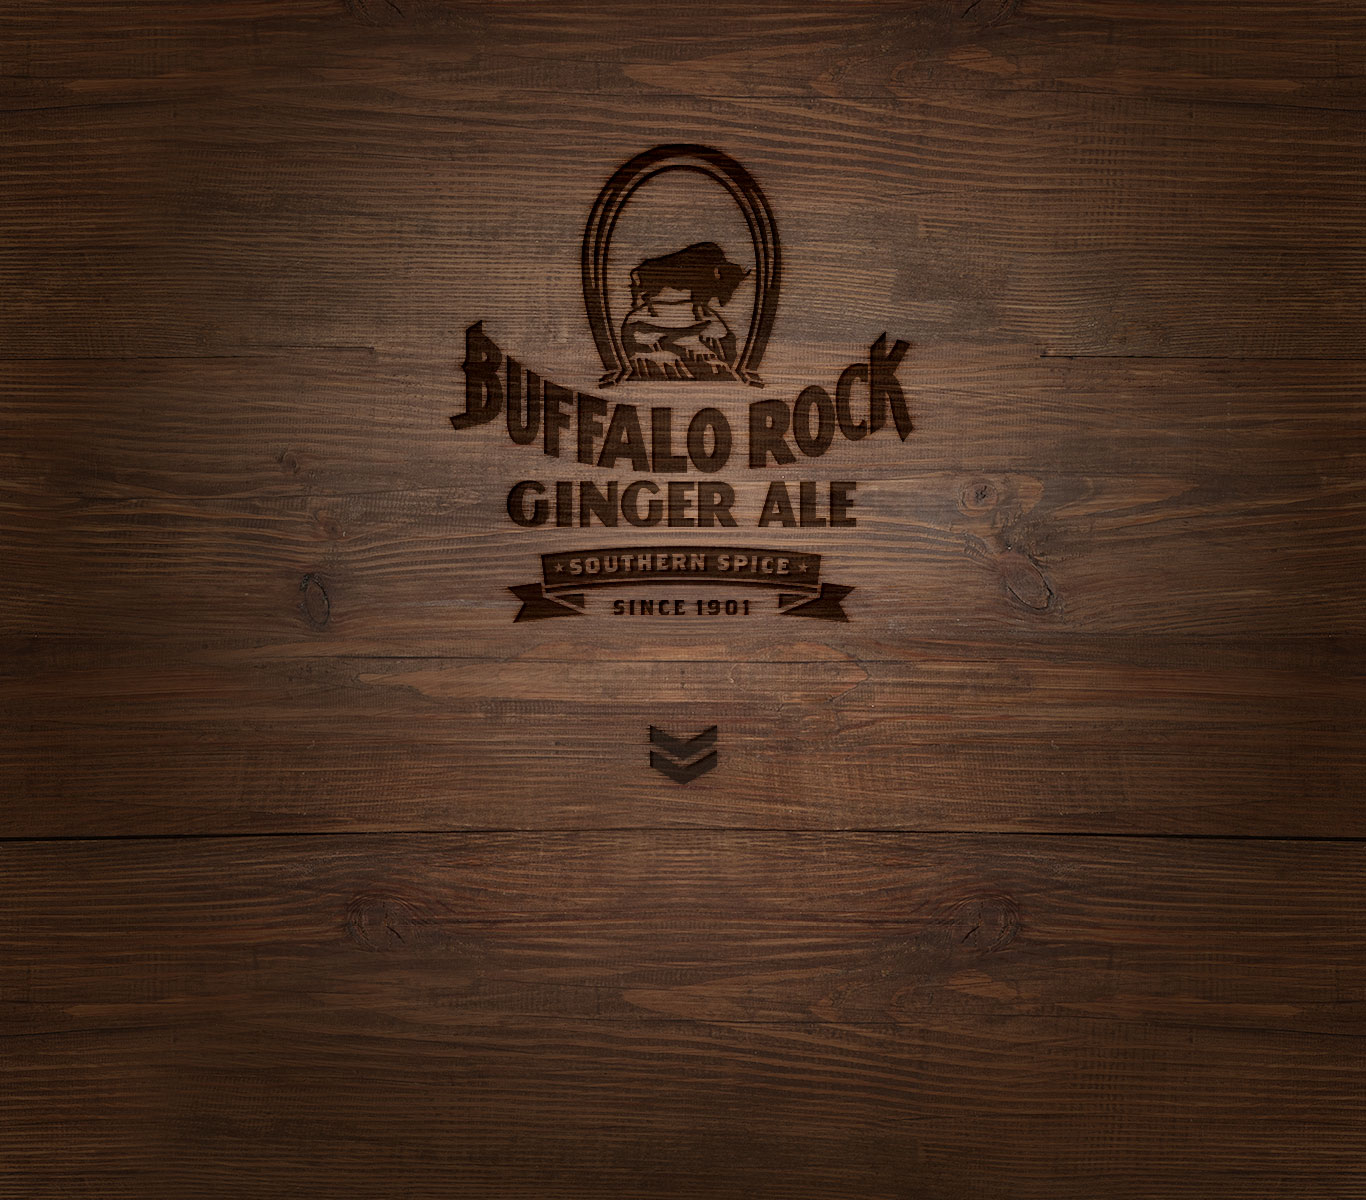 Buffalo Rock Ginger Ale logo on background